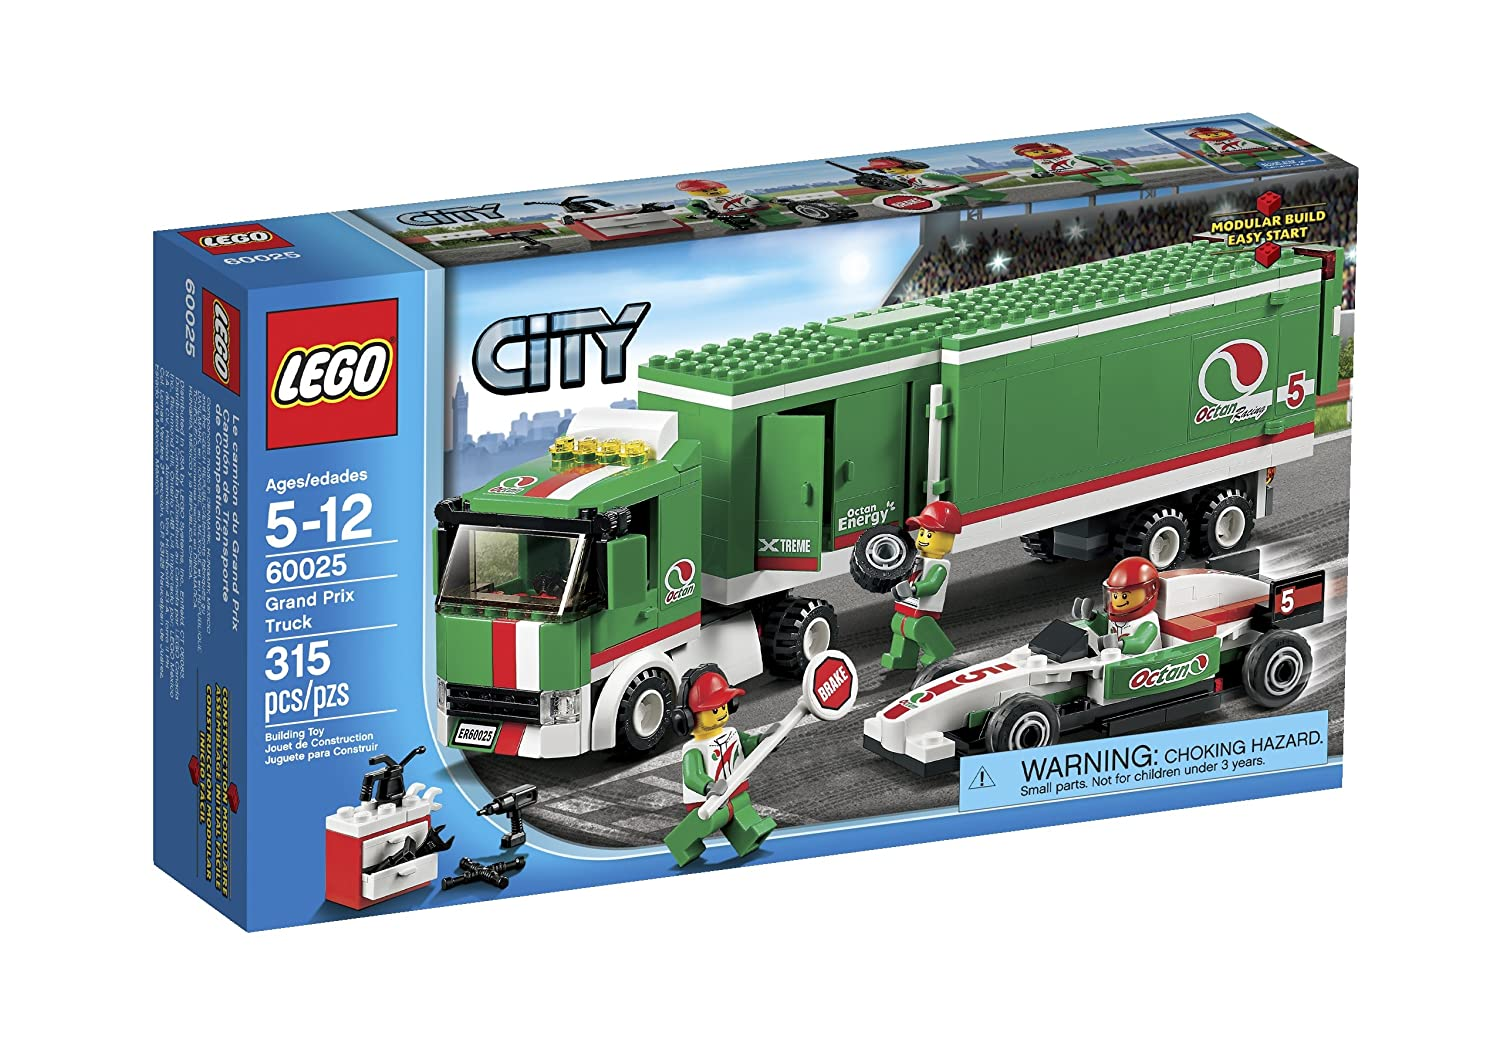 lego city grand prix and flat bed trucks up to 36 off from amazon the shopper 39 s apprentice. Black Bedroom Furniture Sets. Home Design Ideas